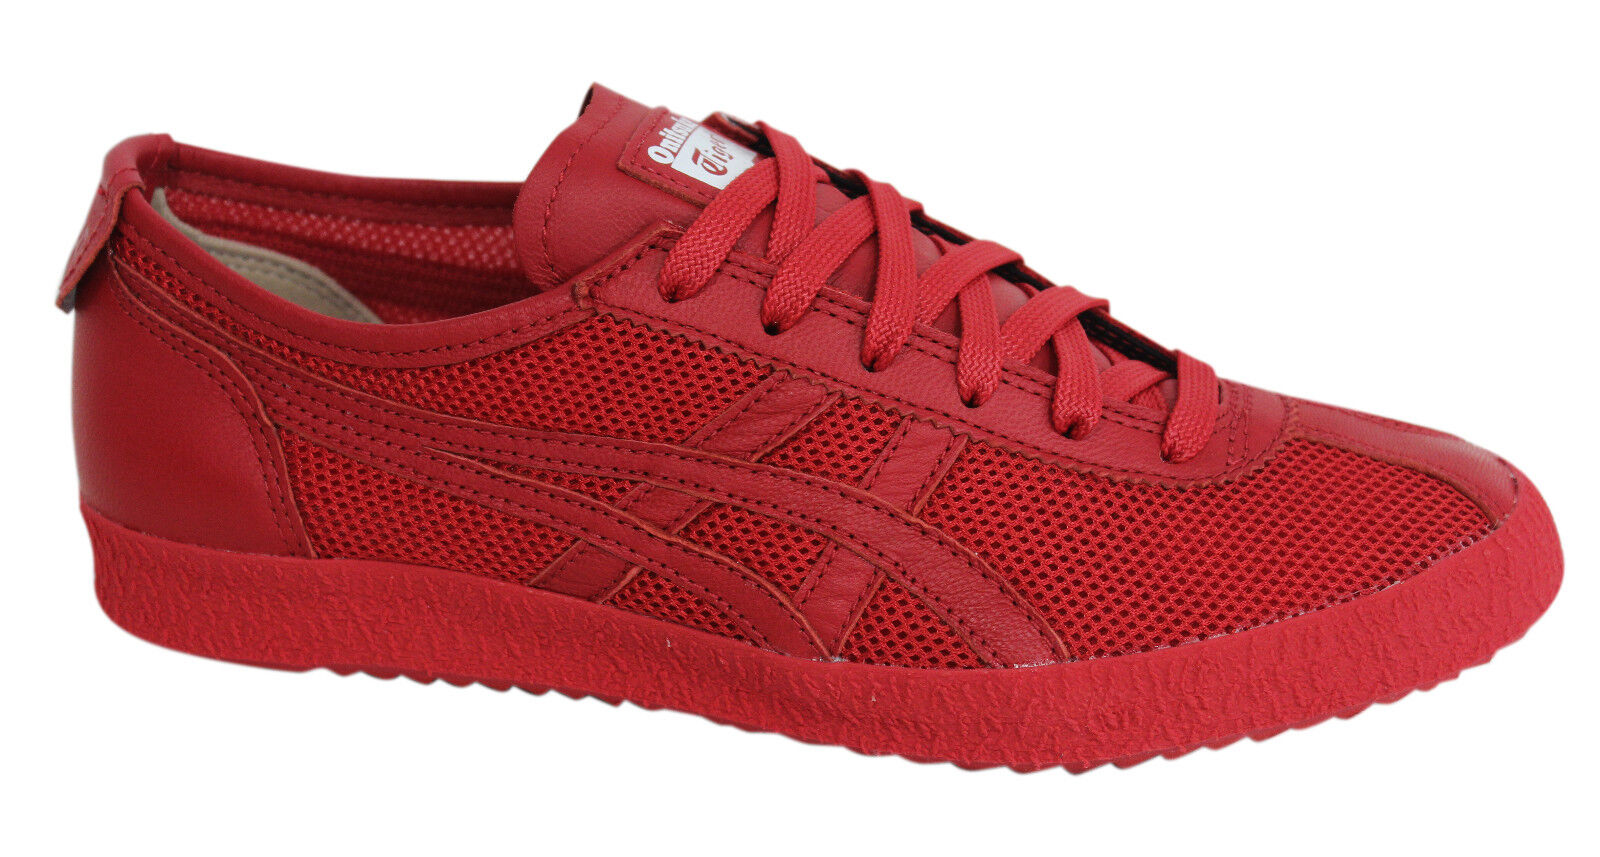 Asics Onitsuka Tiger Mexico Delegation Lace Up Unisex Trainers D6N1N 2525 D79 Comfortable and good-looking